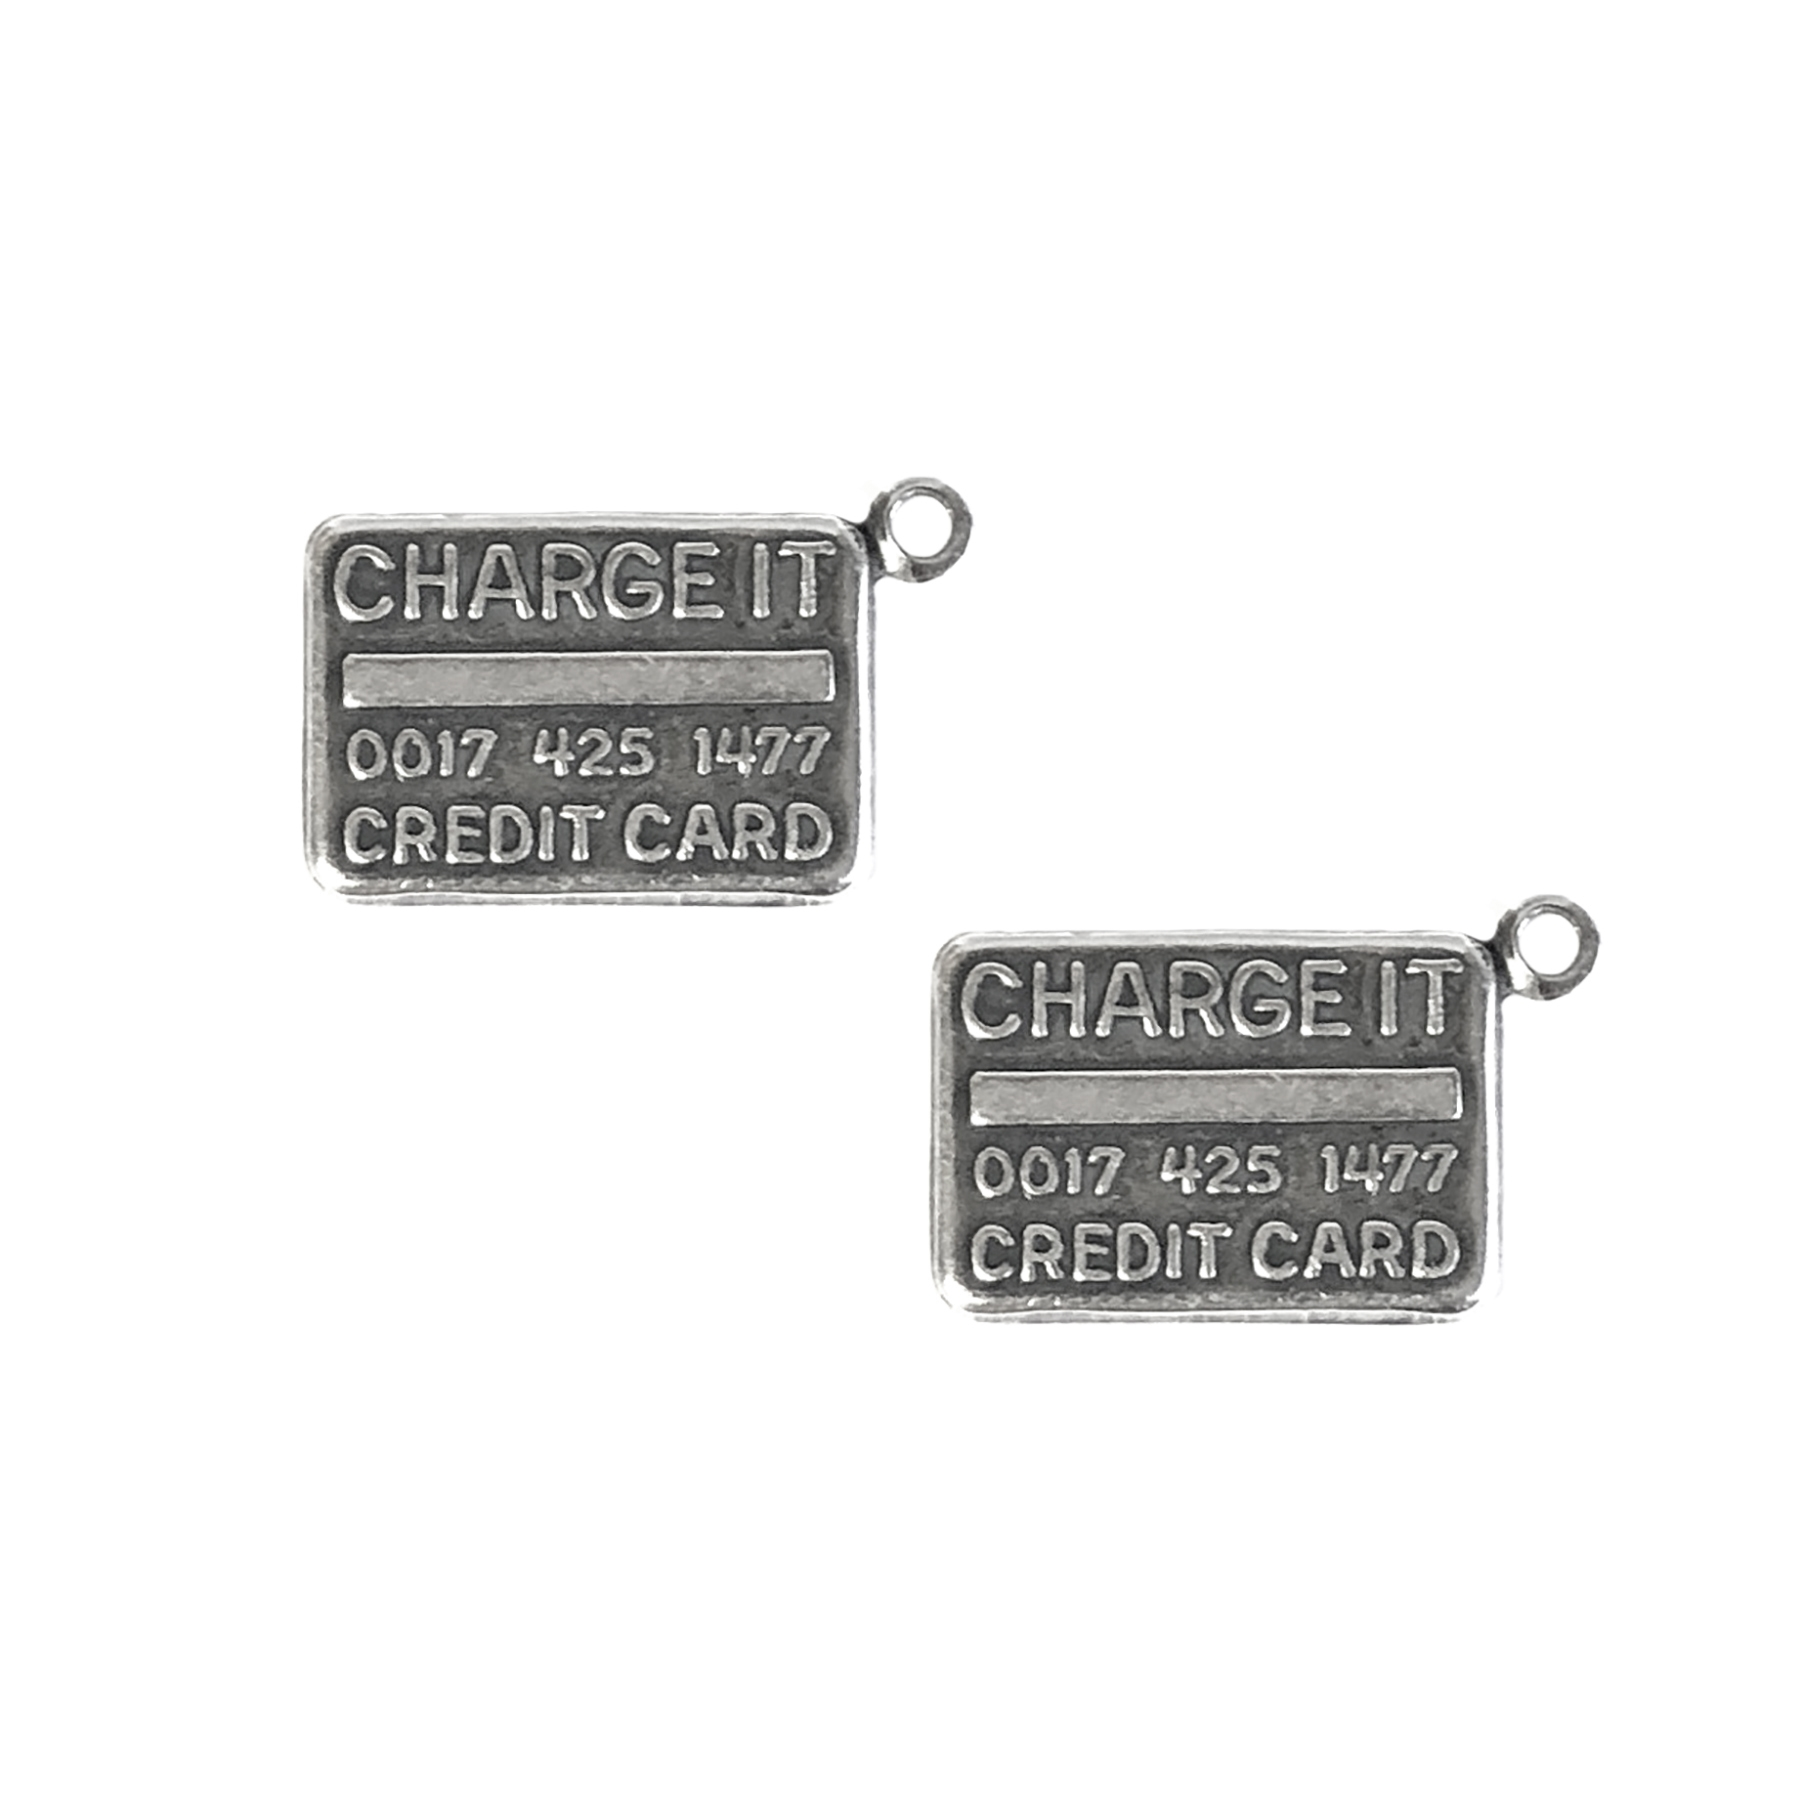 credit card charms, silverware silverplate, antique silver, charms, credit cards, 11x20mm, brass stamping, US-made, nickel-free, charge it, credit card stamping, credit card jewelry, jewelry making, jewelry supplies, vintage supplies, silver charm, 09412